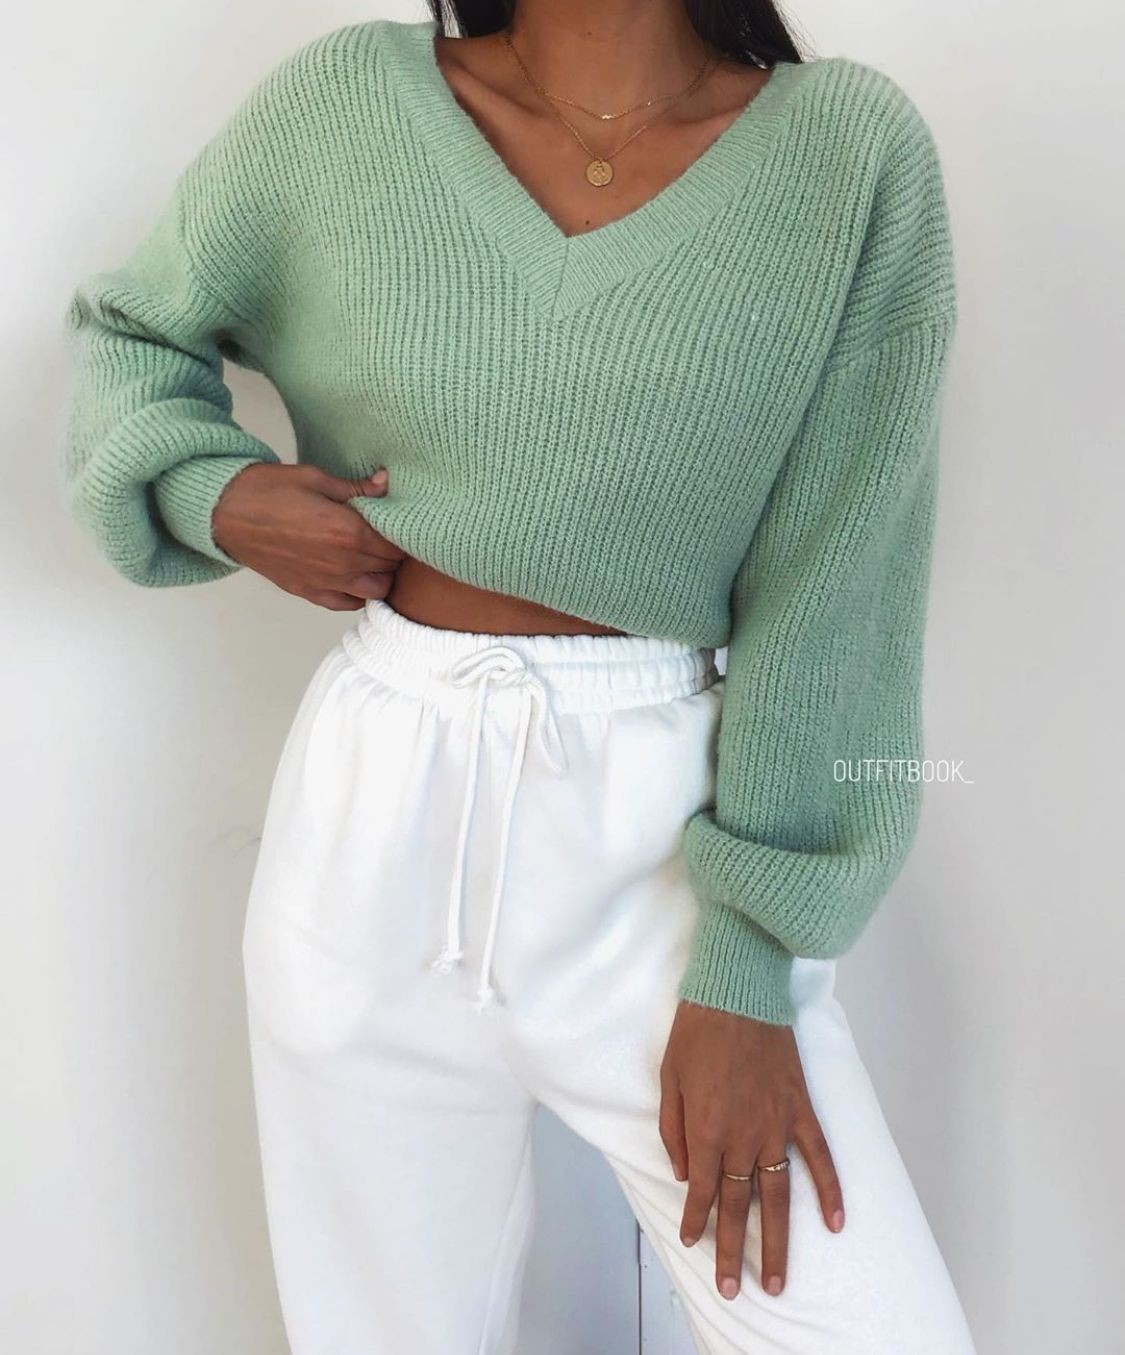 Turquoise and green outfit style with sweater